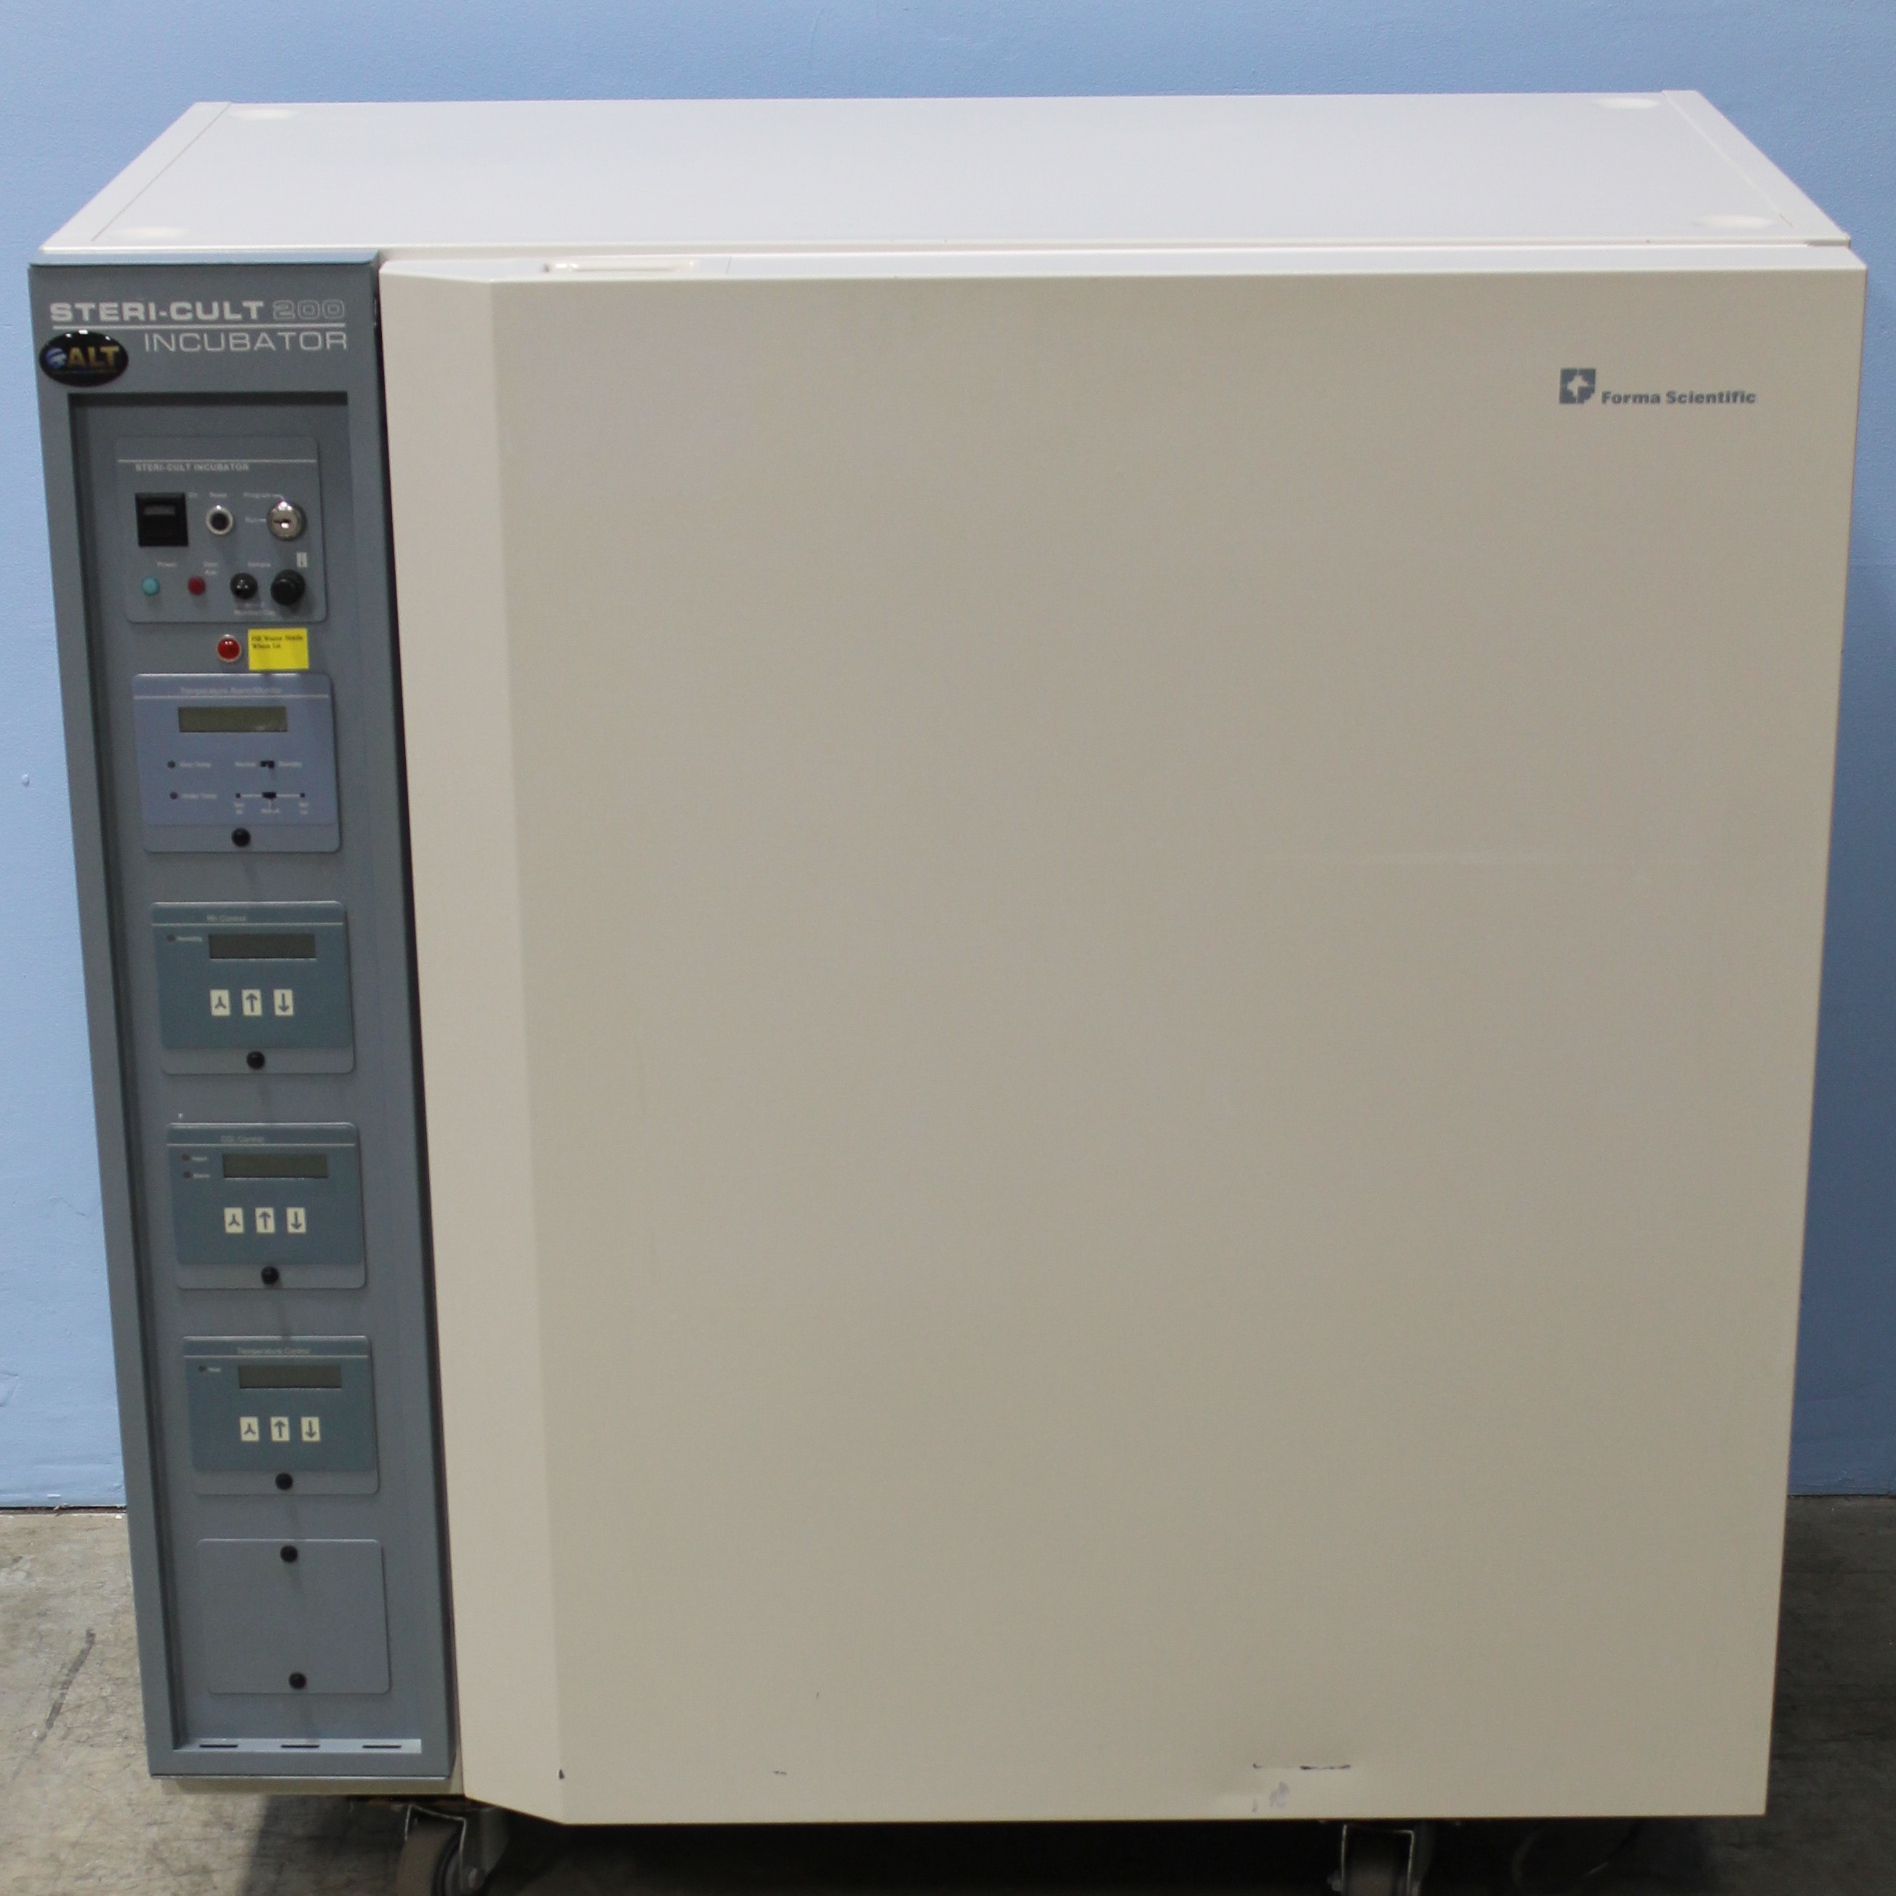 Forma Scientific 3033 Steri-Cult 200 CO2 Incubator Image